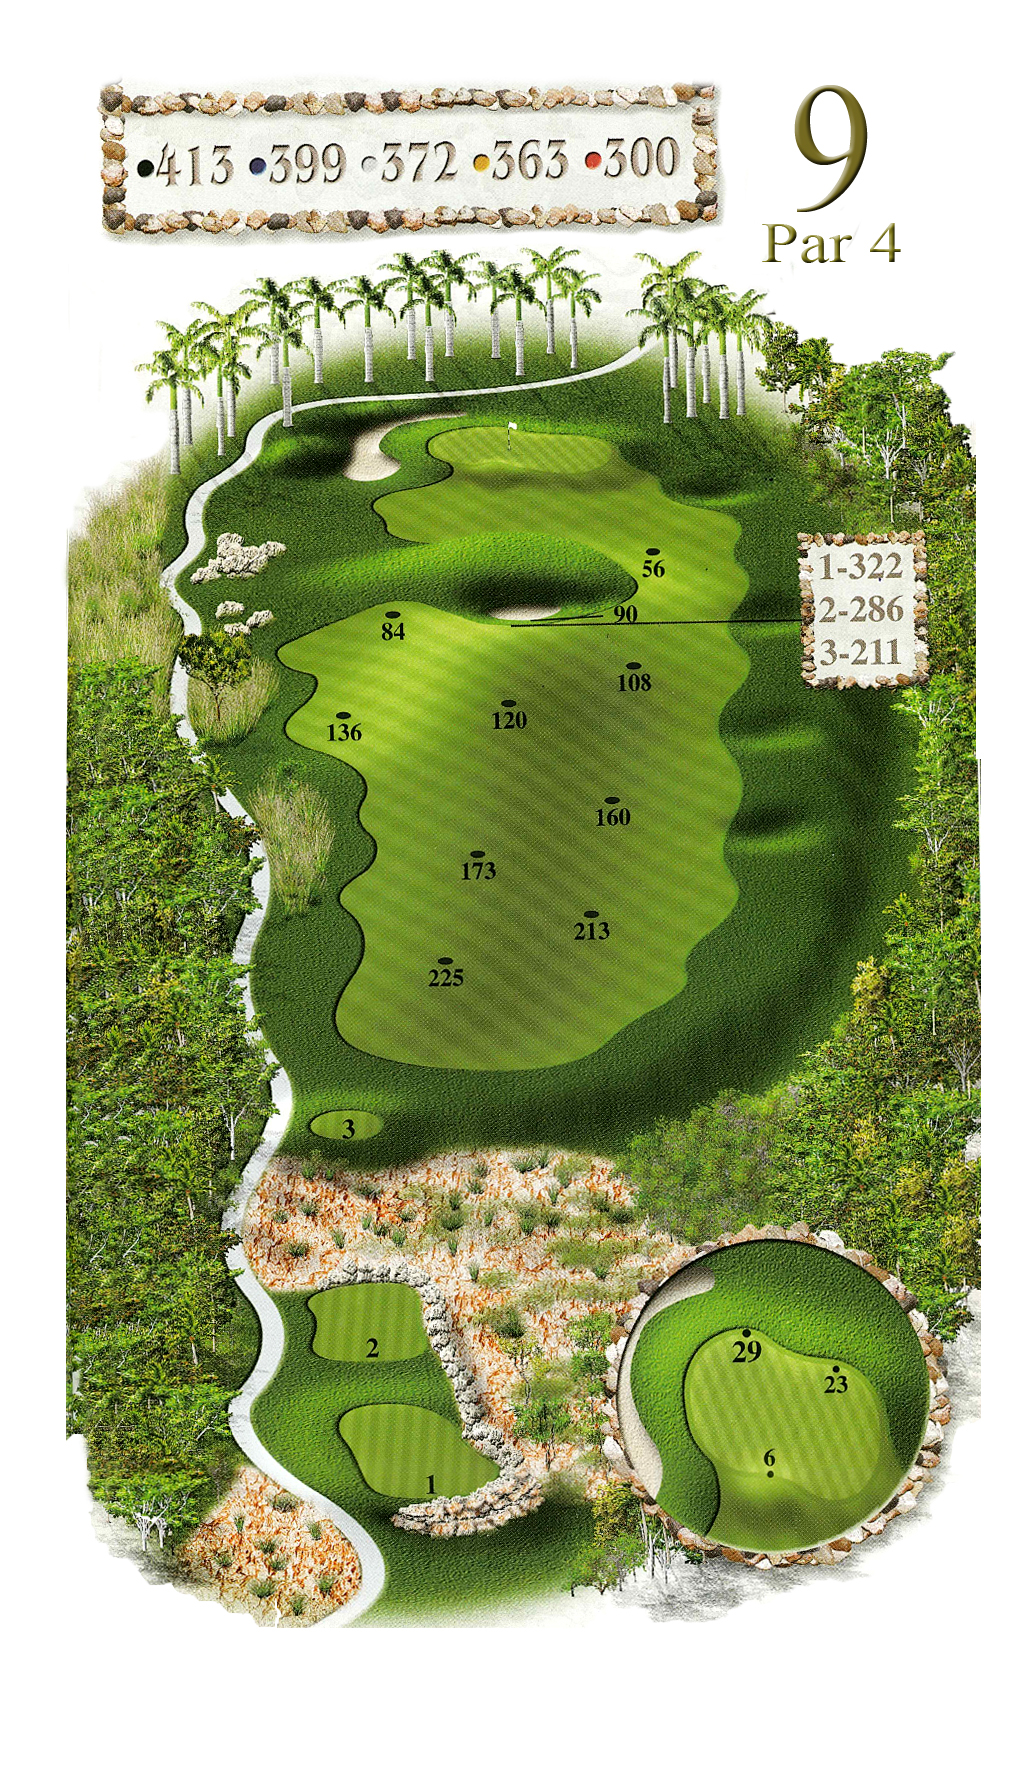 Hole #9 • Par 4• 405 yards